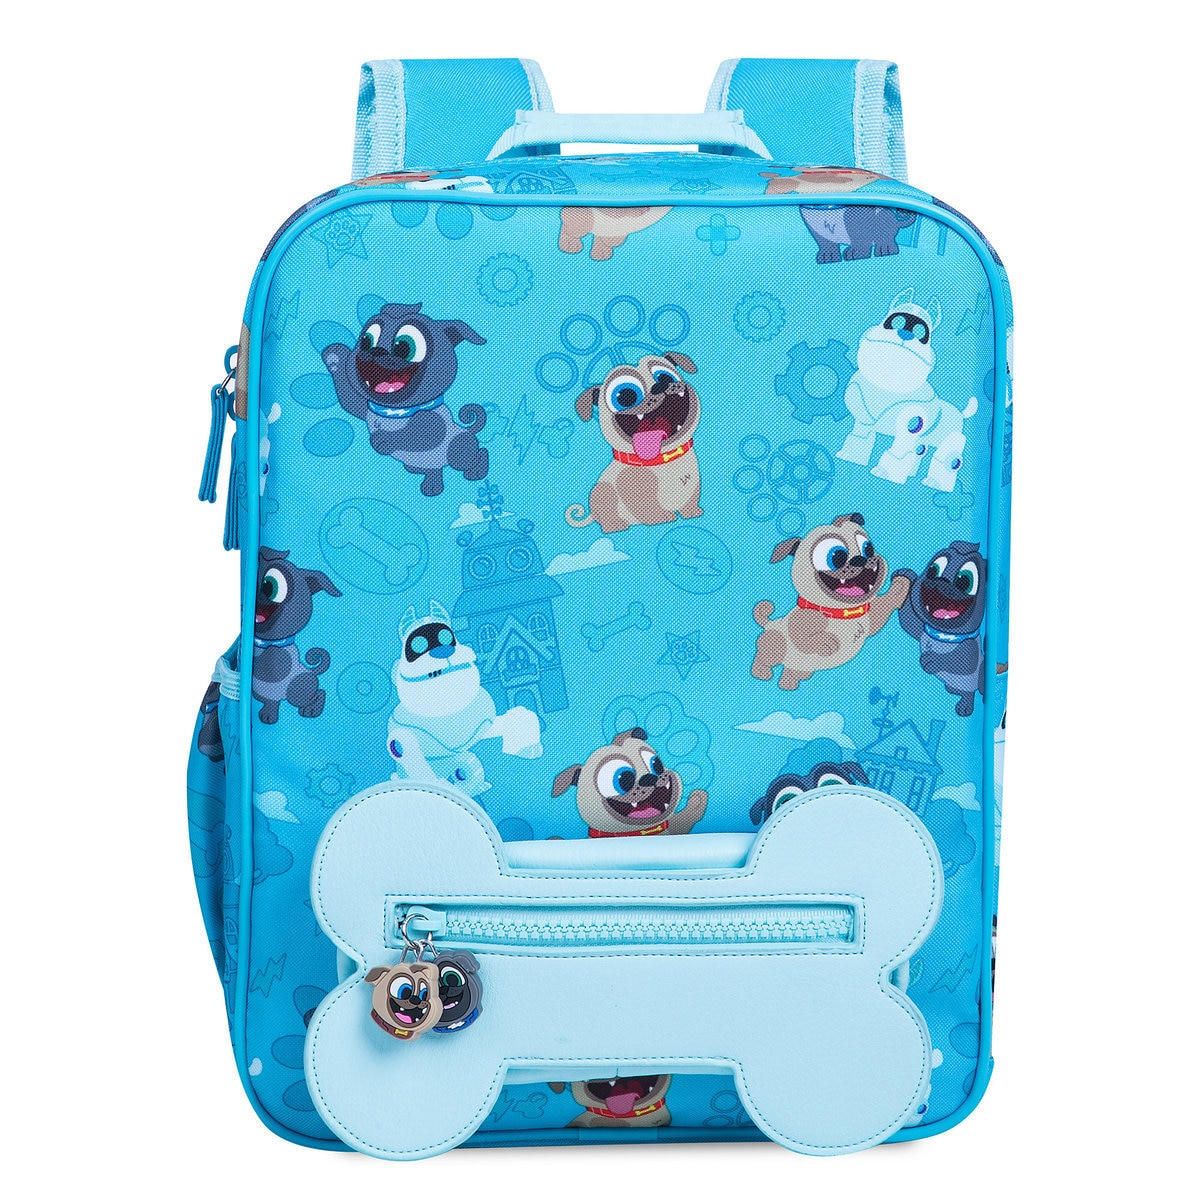 6102297065 Product Image of Puppy Dog Pals Junior Backpack - Personalizable   1